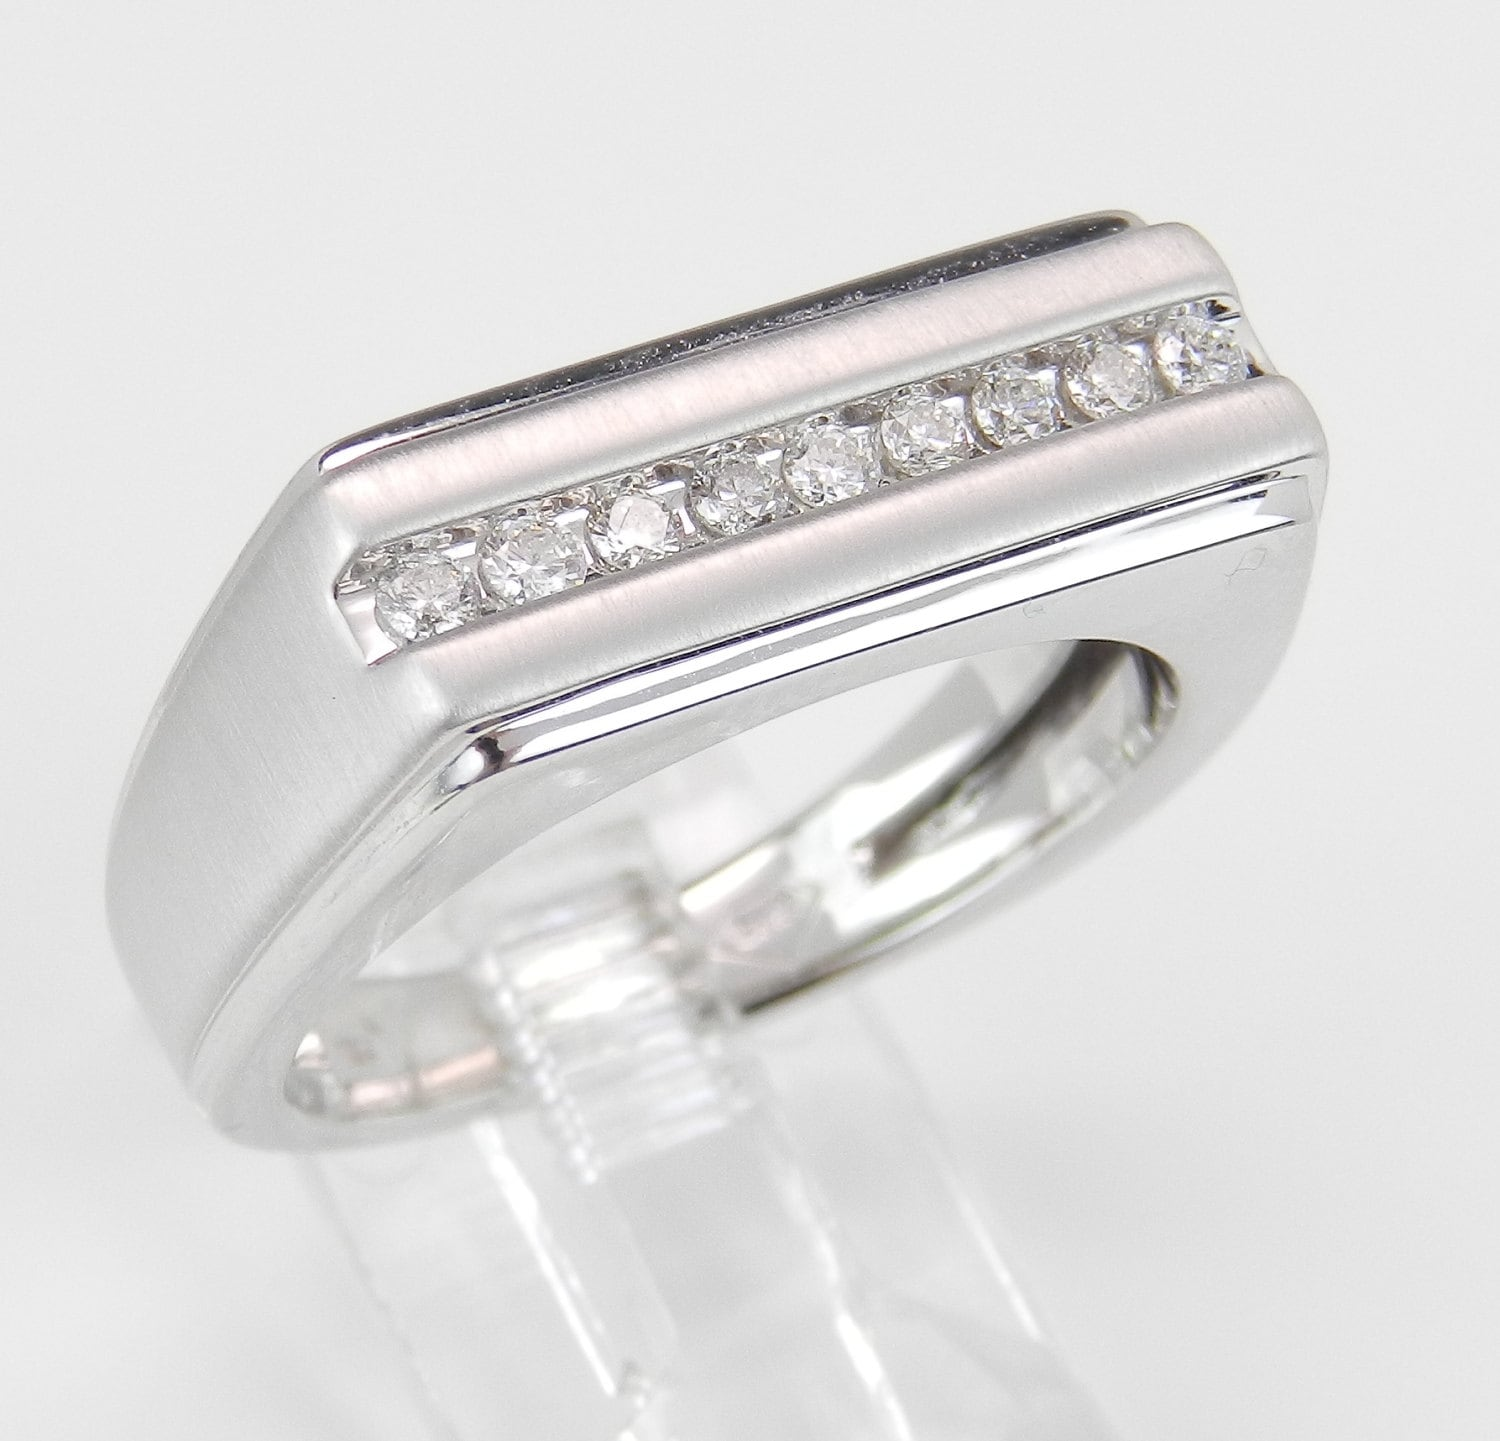 jewelry s your ladies ring full band koerber bands tacori bridal fine diamond destination wedding engagement